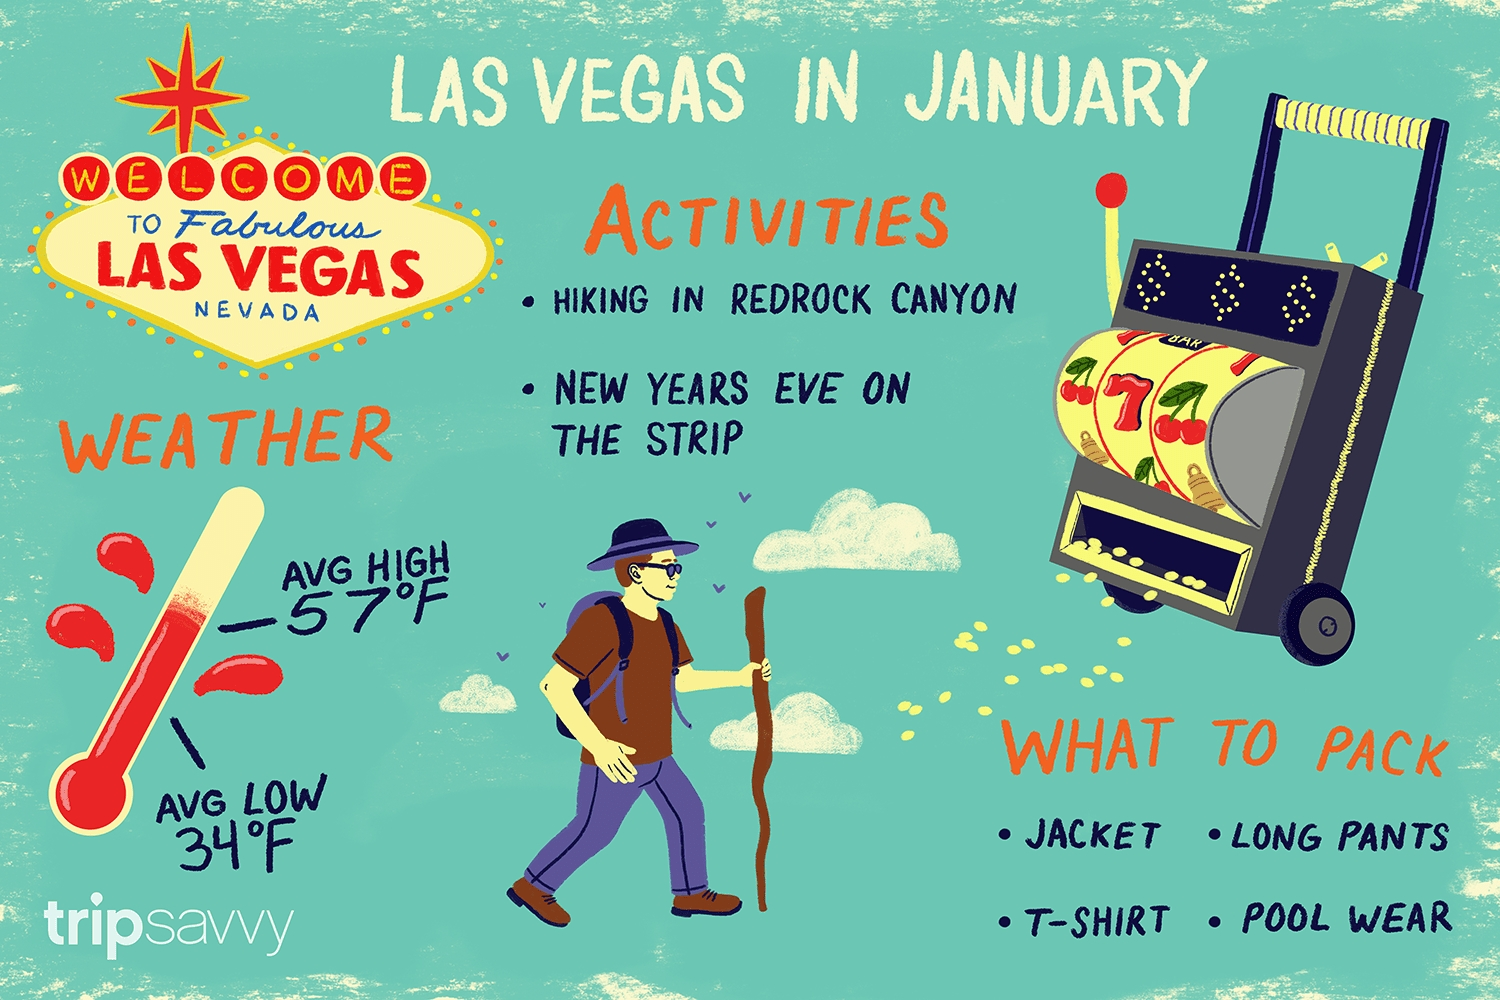 January In Las Vegas: Weather And Event Guide-Las Vegas Event Calendar January 2020